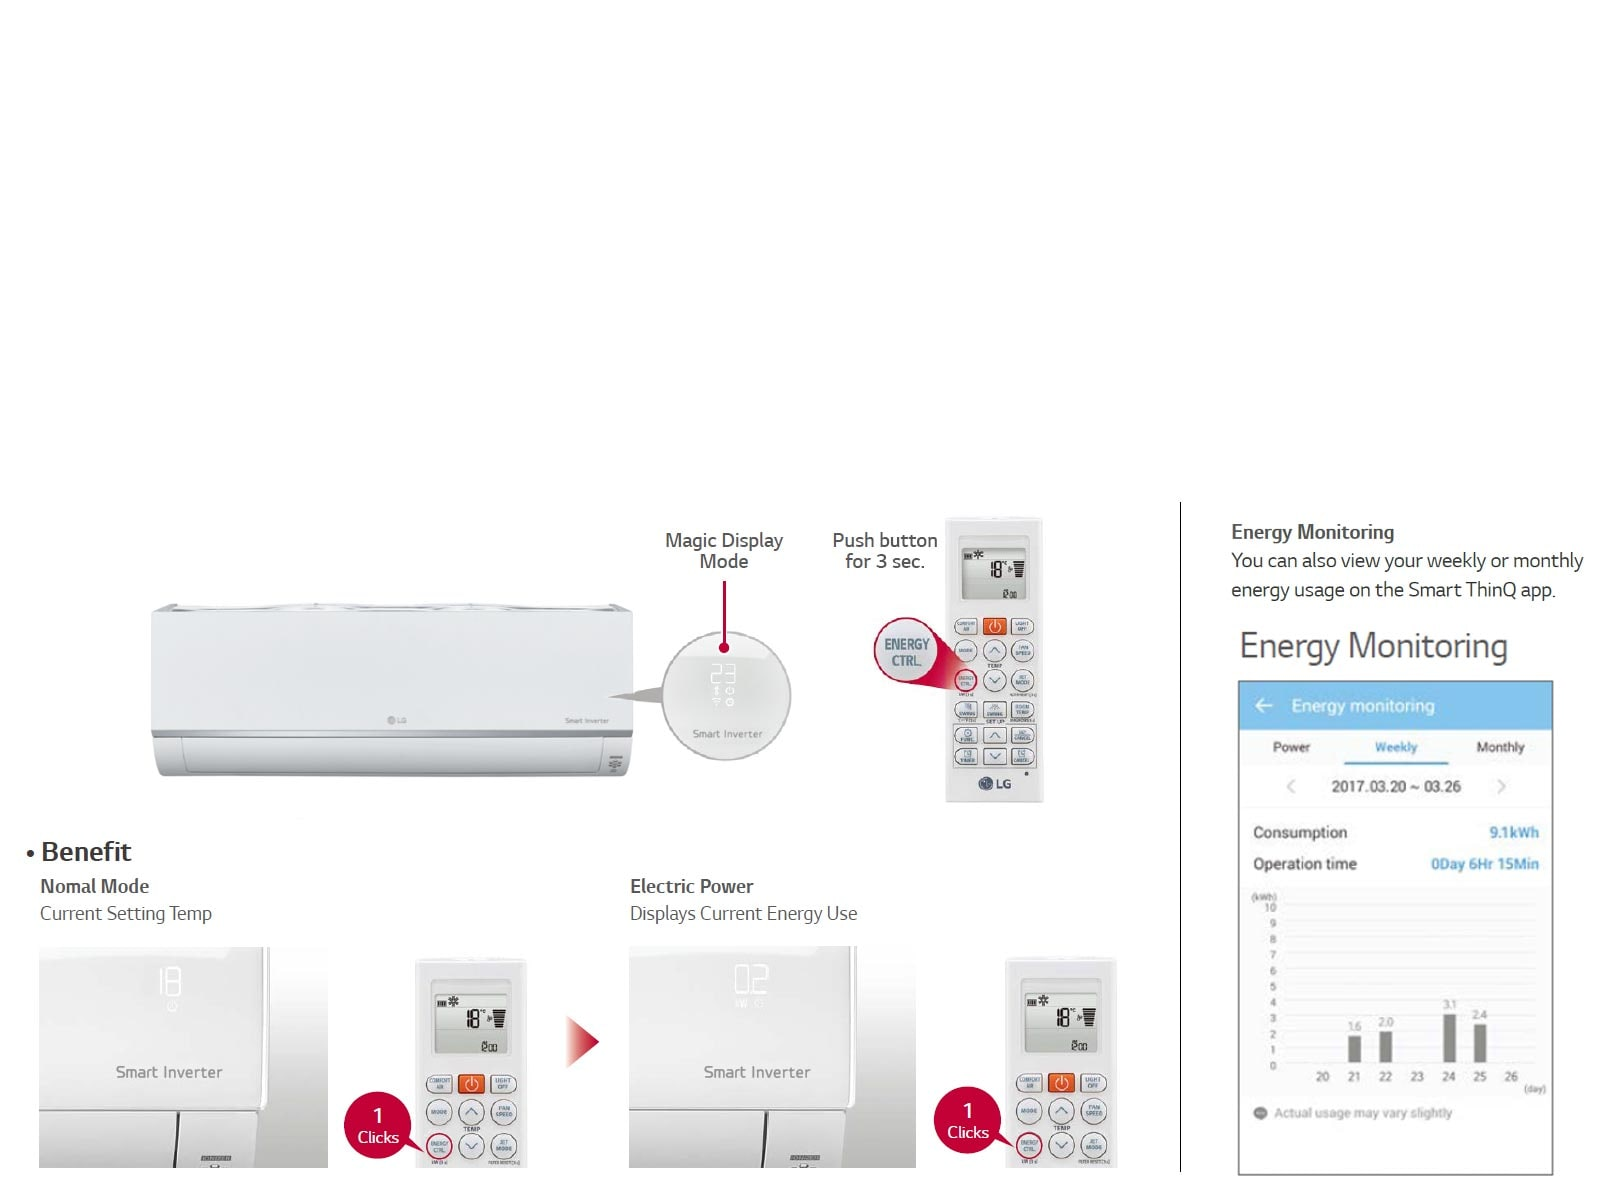 View your real time energy usage1